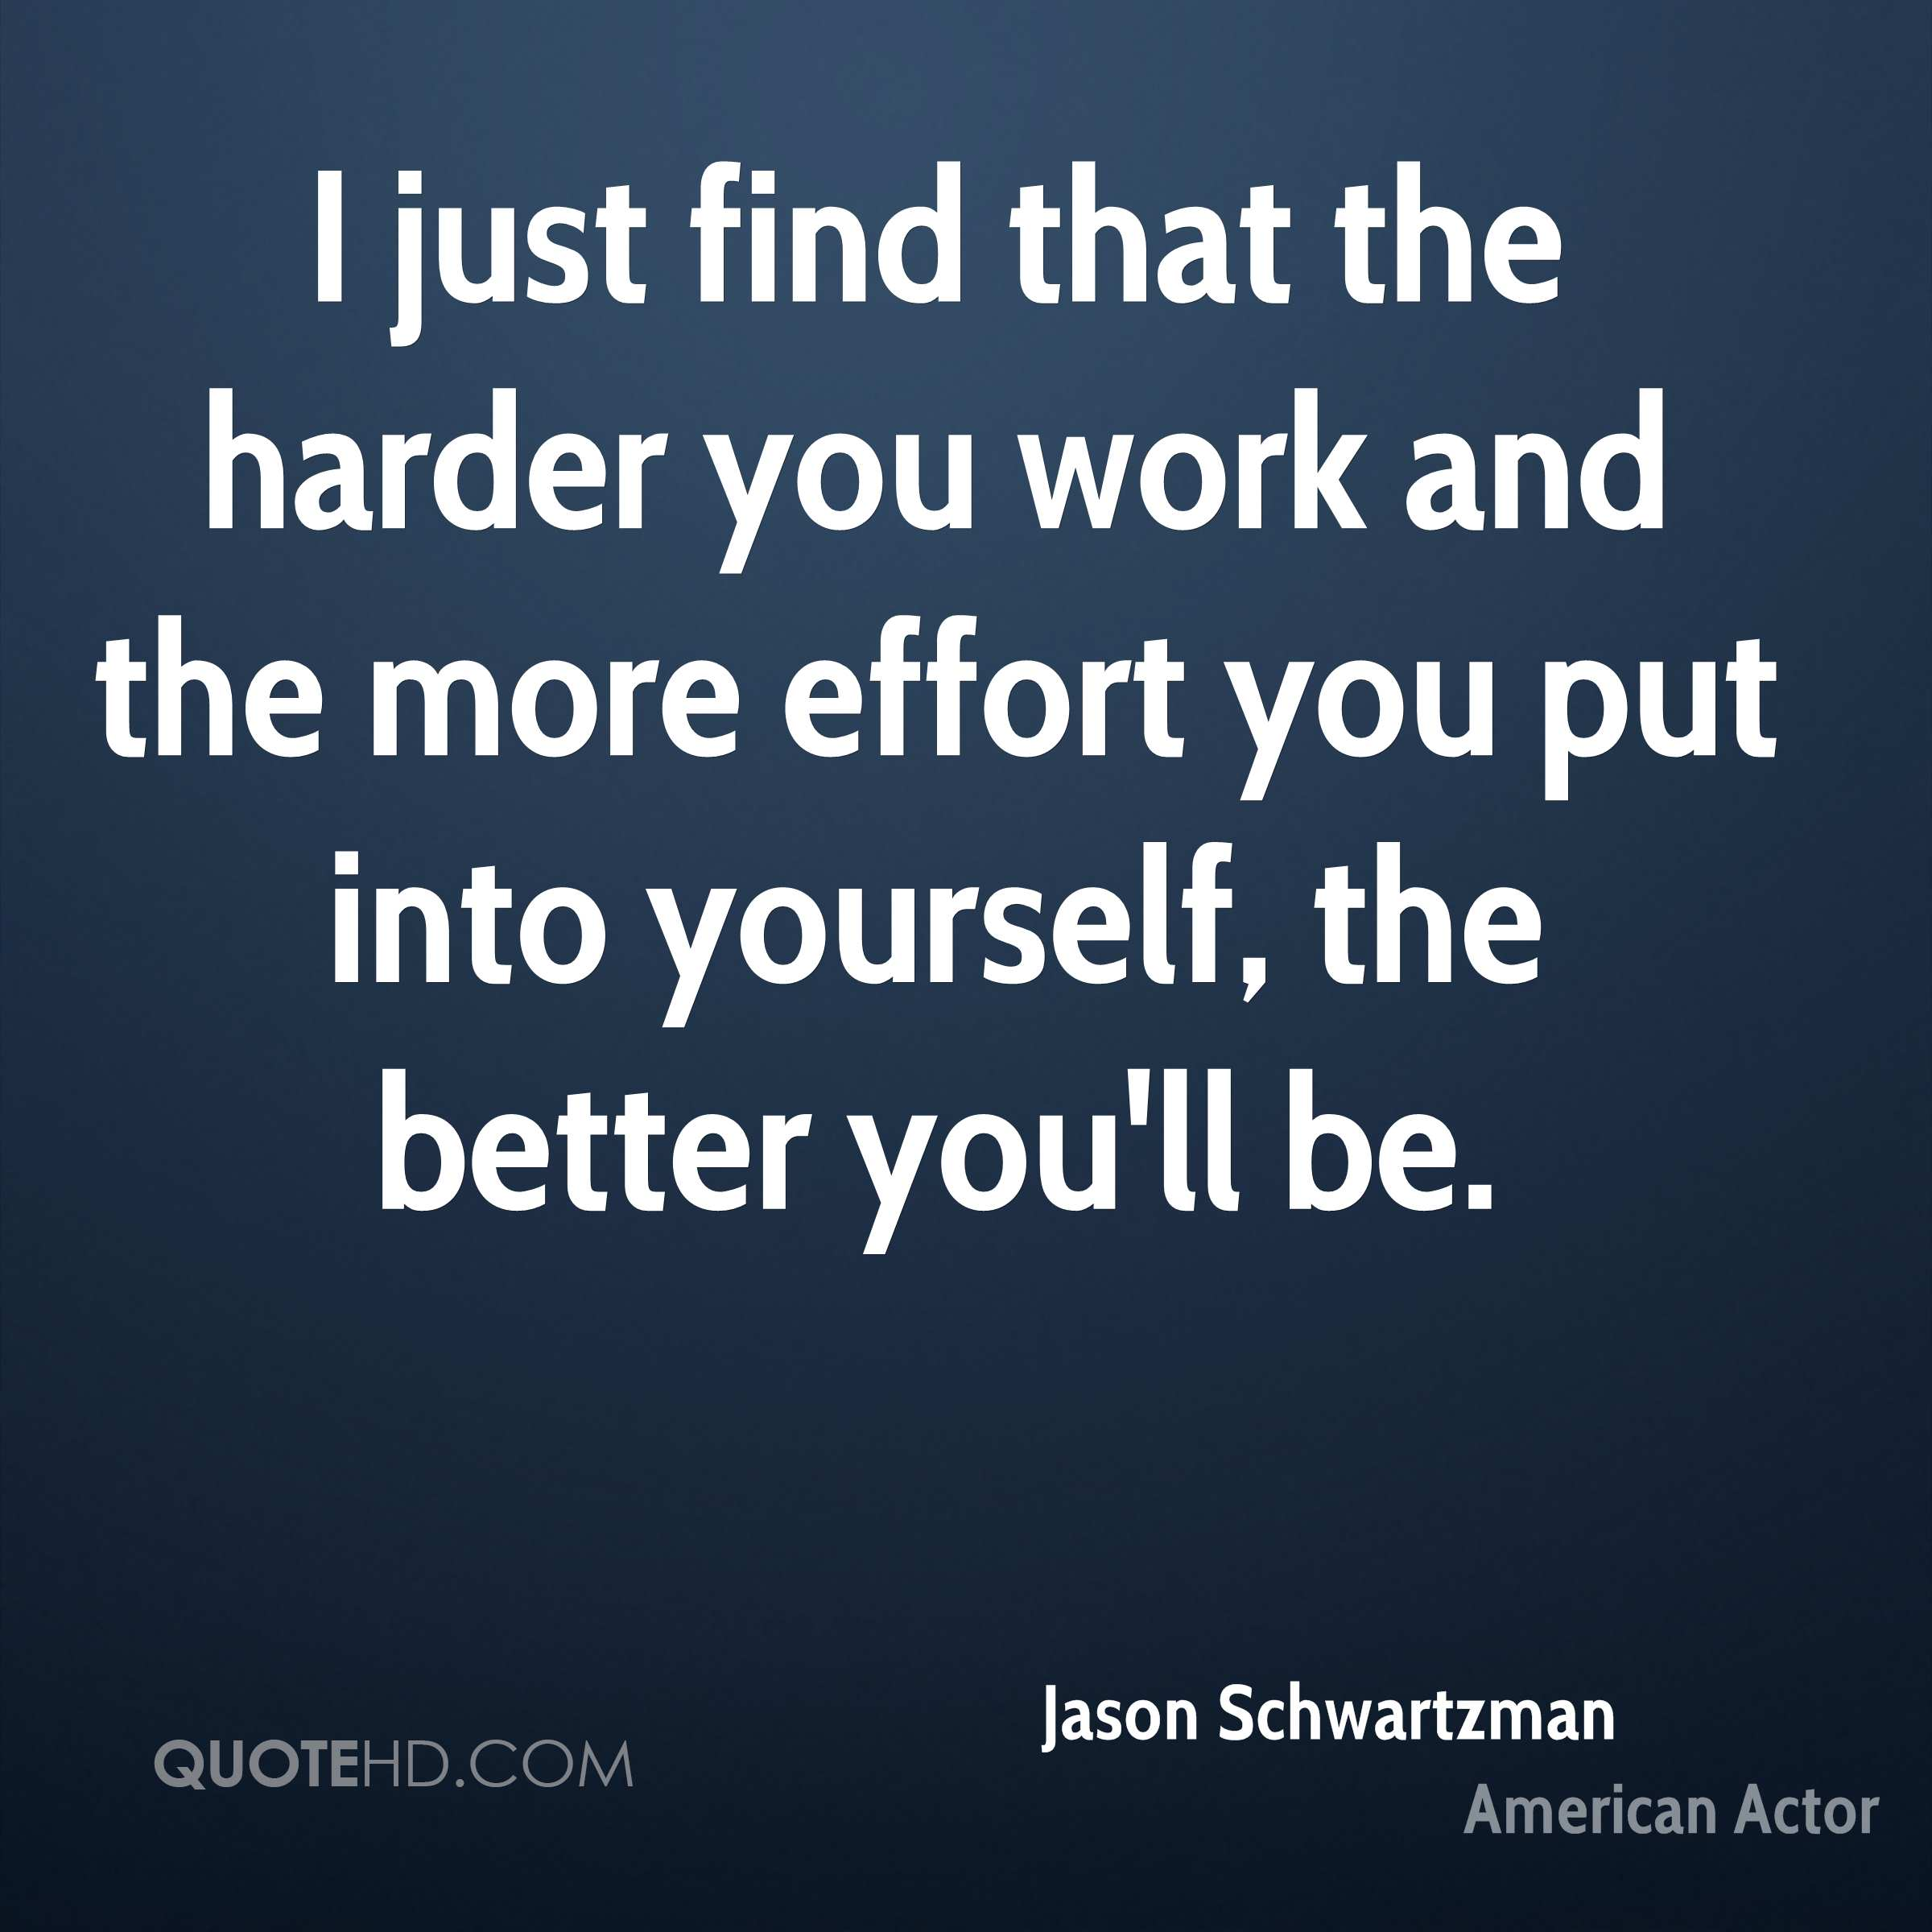 I just find that the harder you work and the more effort you put into yourself, the better you'll be.